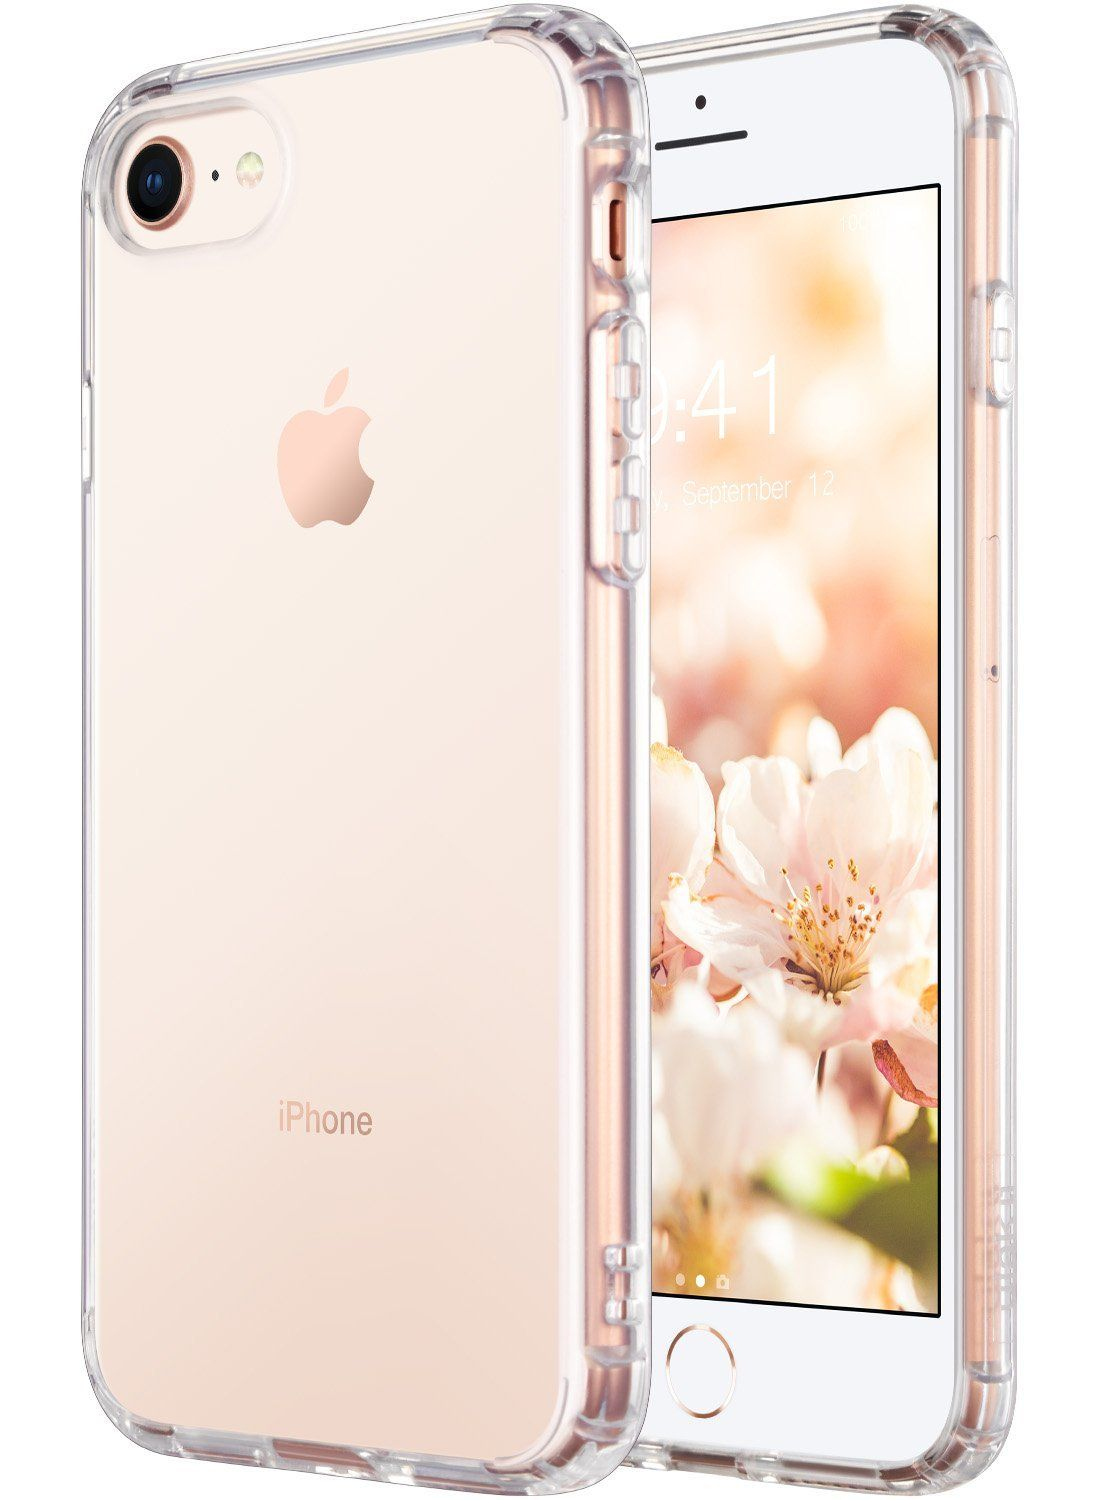 edd55dd6d3 iPhone 8 Case Clear, iPhone 7 Case, ULAK Clear Slim Premium Hybrid Shock  Absorbing & Scratch Resistant Clear Case Cover Hard Back Panel + TPU Bumper  for ...